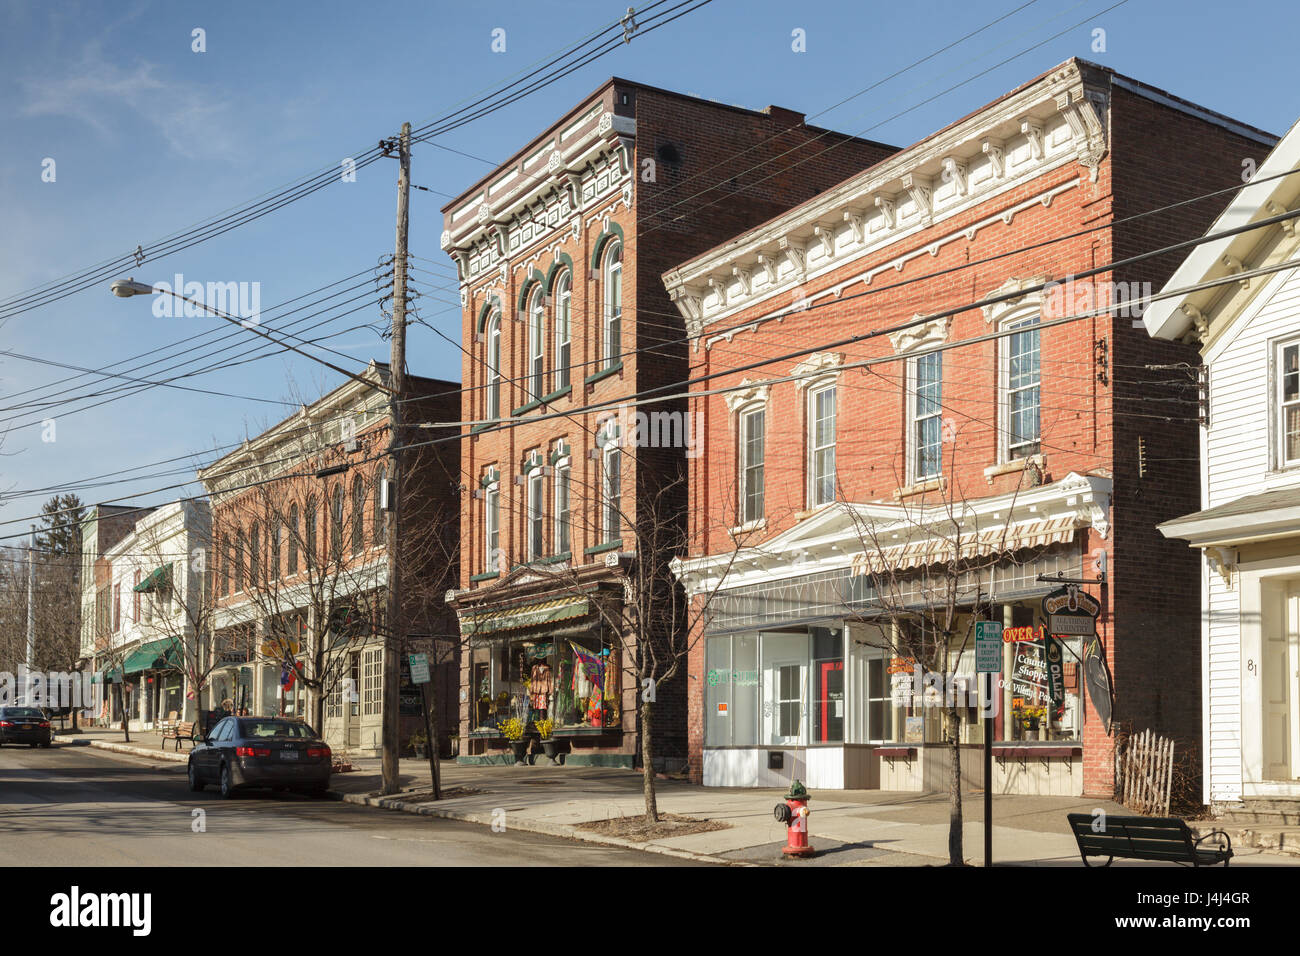 Main Street businesses, Greenwich, Washington County, New York State - Stock Image